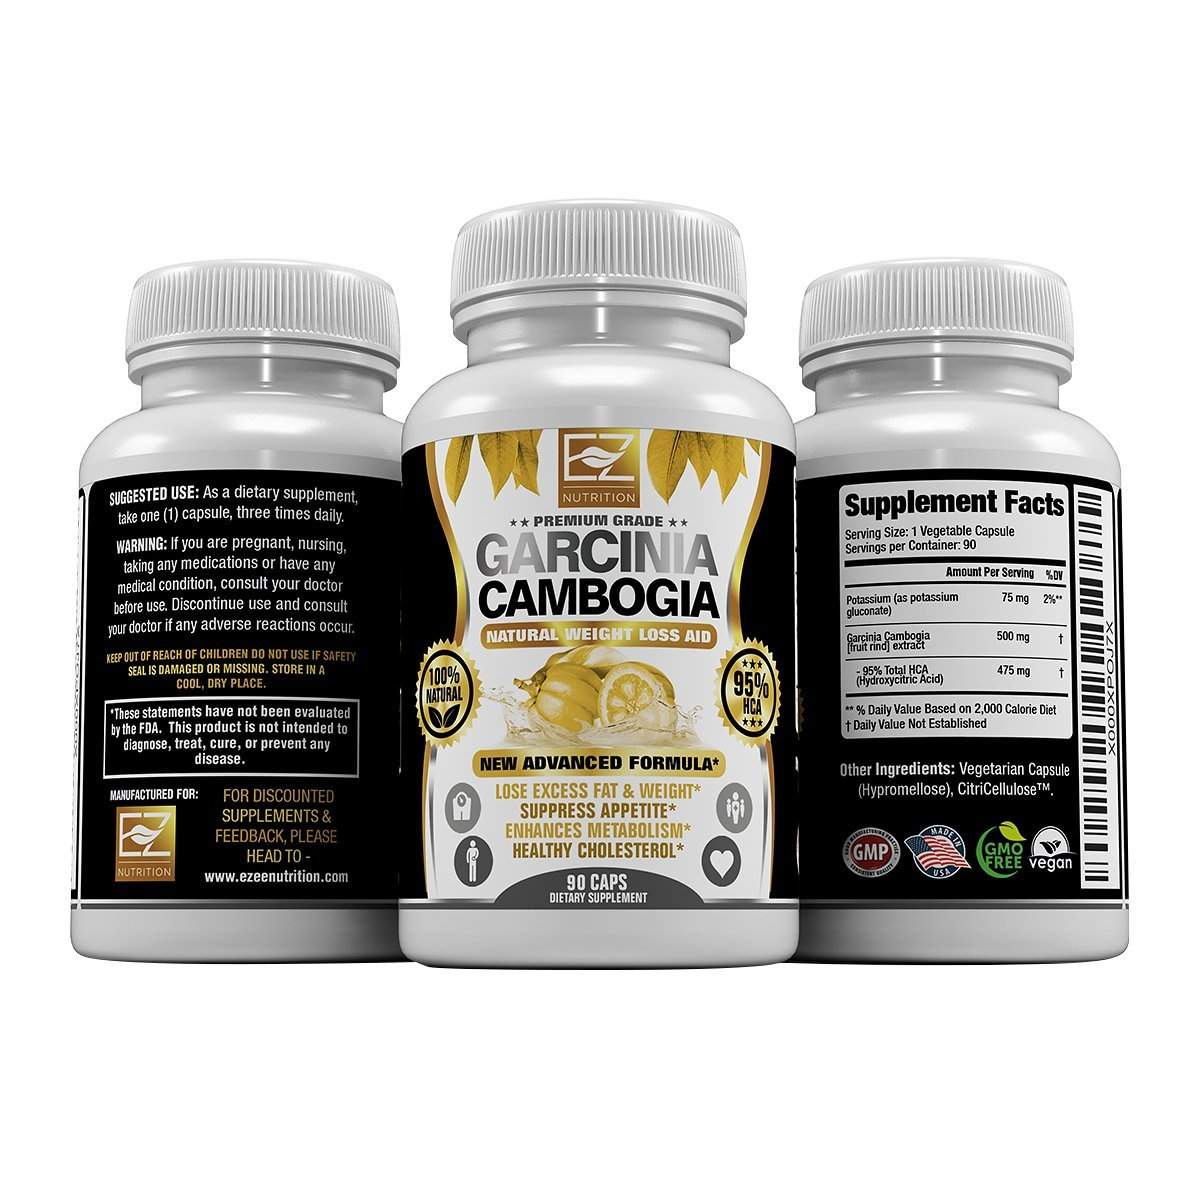 95% HCA Pure Premium Garcinia Cambogia Extract, Highest Potency Of Raw Diet Pills, Extreme Carb Blocker & Fat Burner Supplement for Fast Weight Loss, Fast Acting Appetite Suppressant